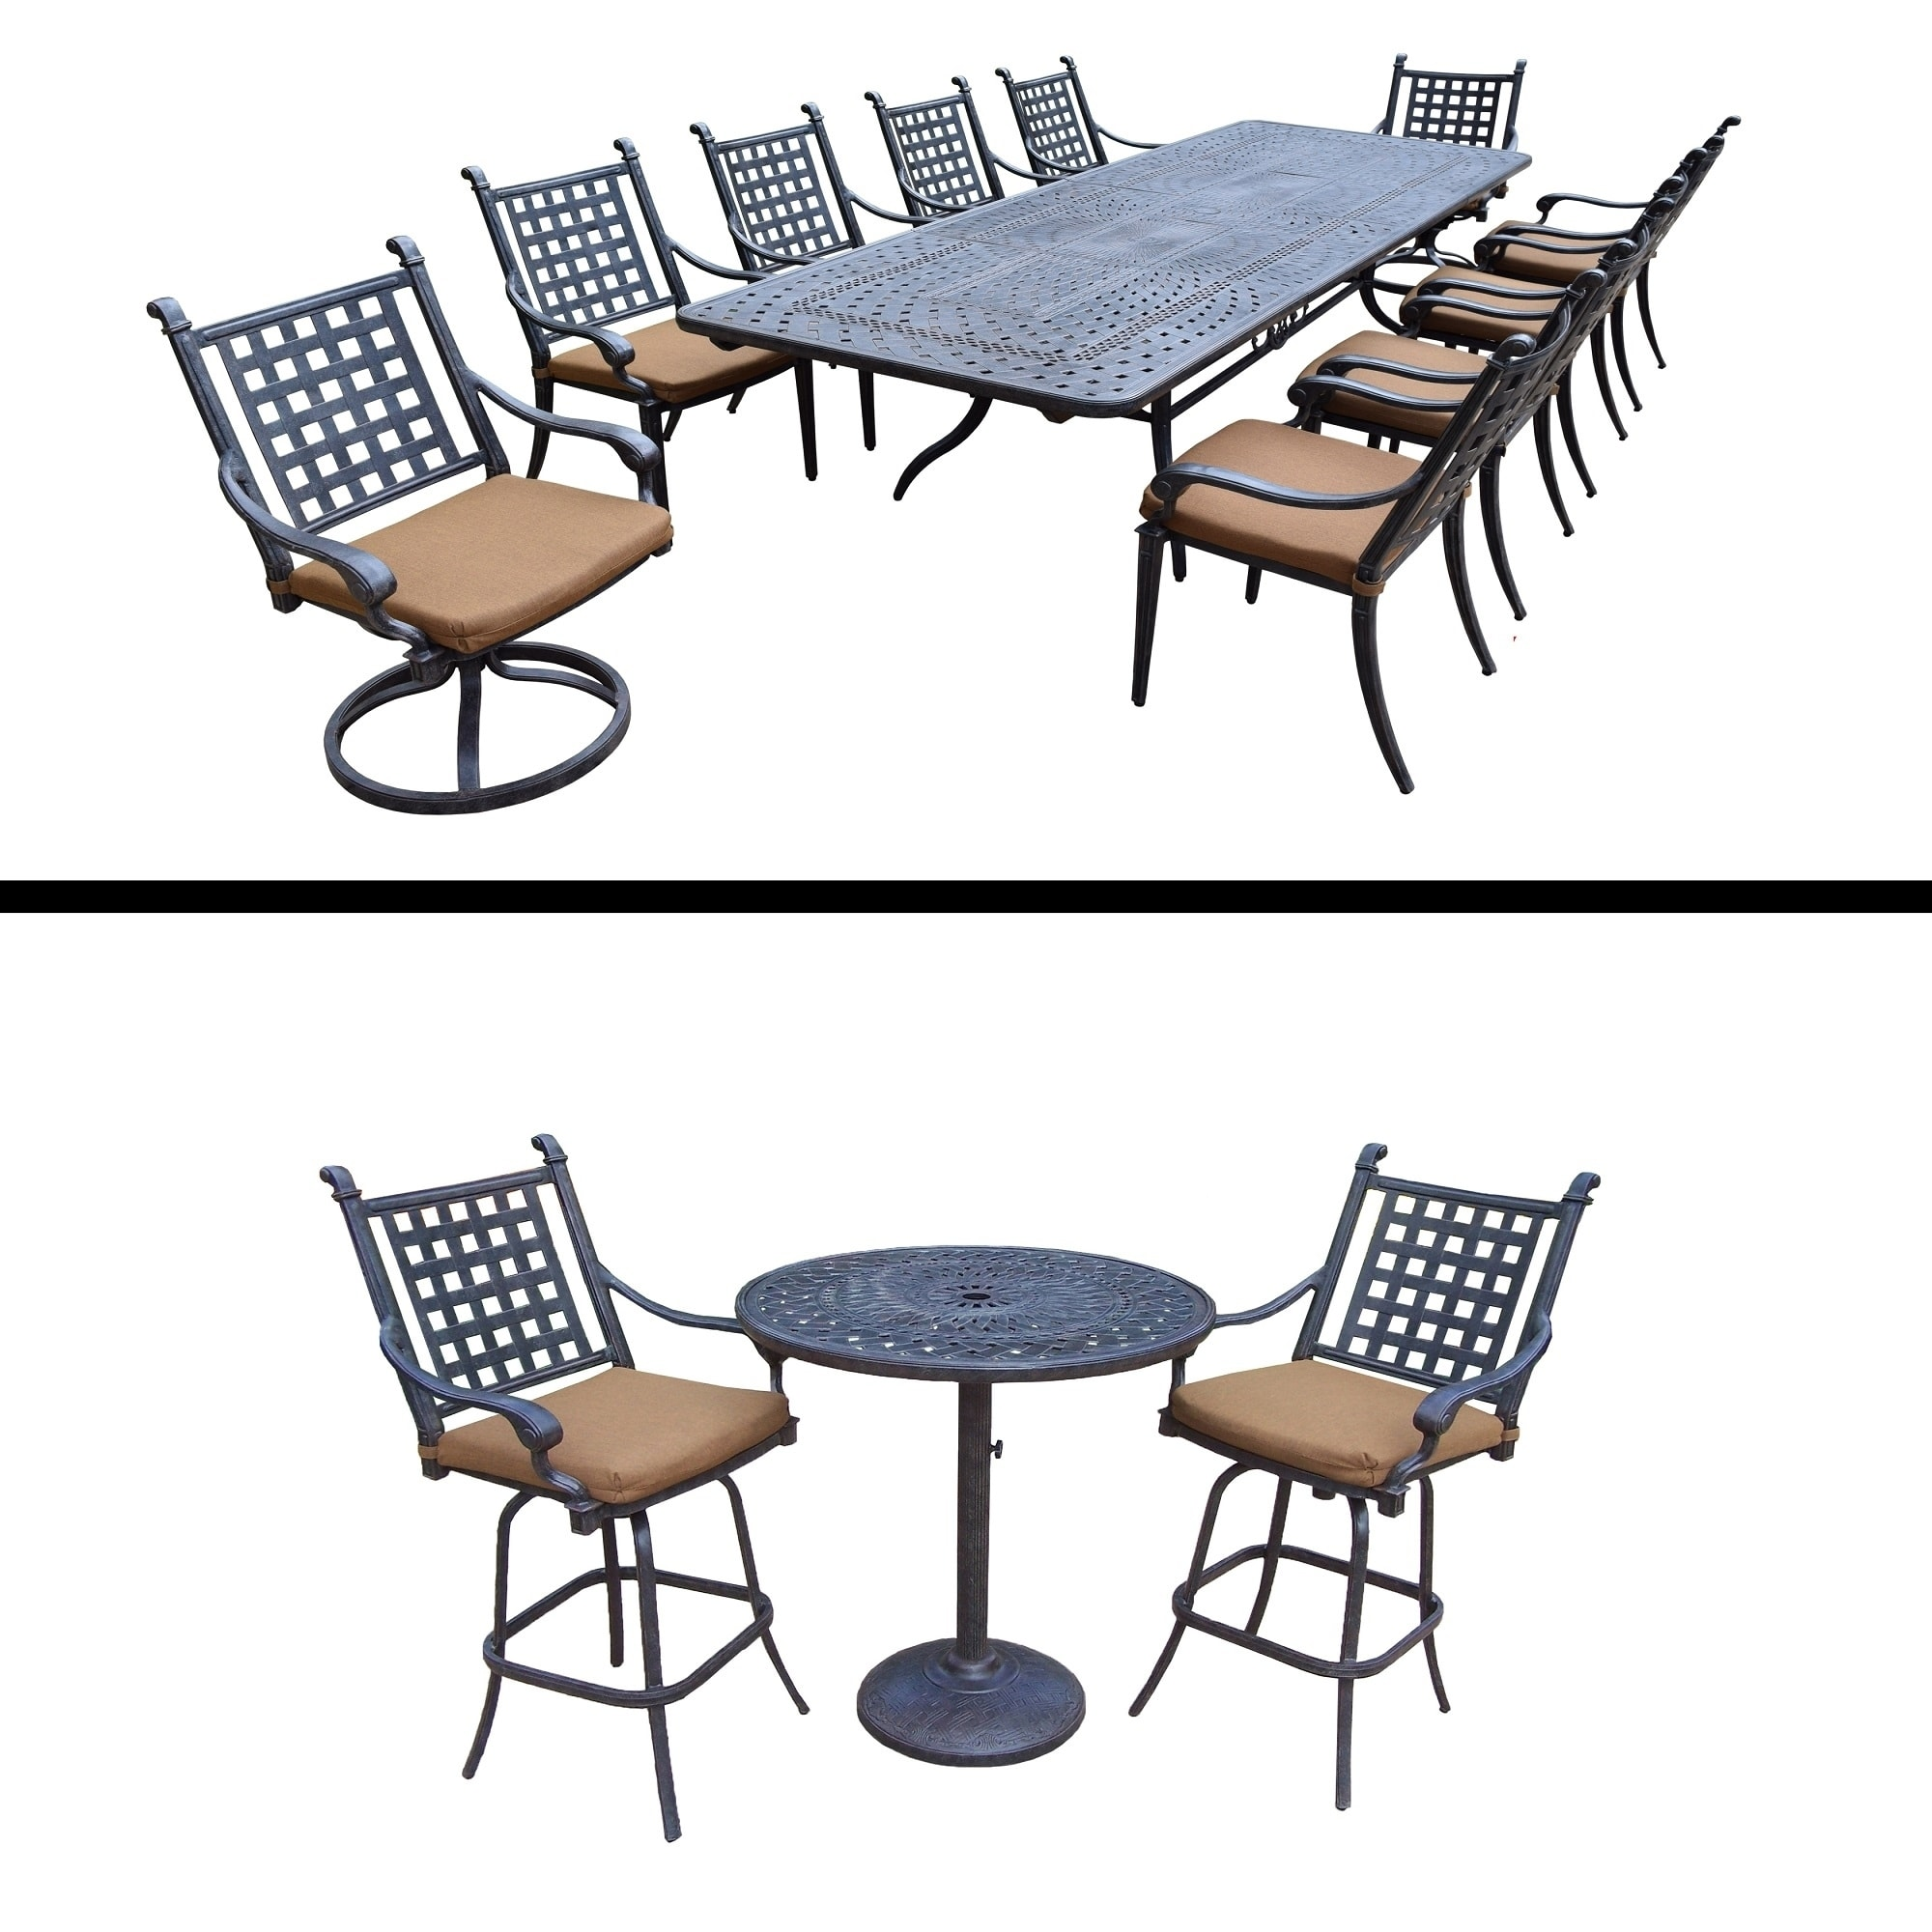 Oakland Living 11 Pc Dining Room Set with Extendable Table and 3 Pc Bar Set by Overstock